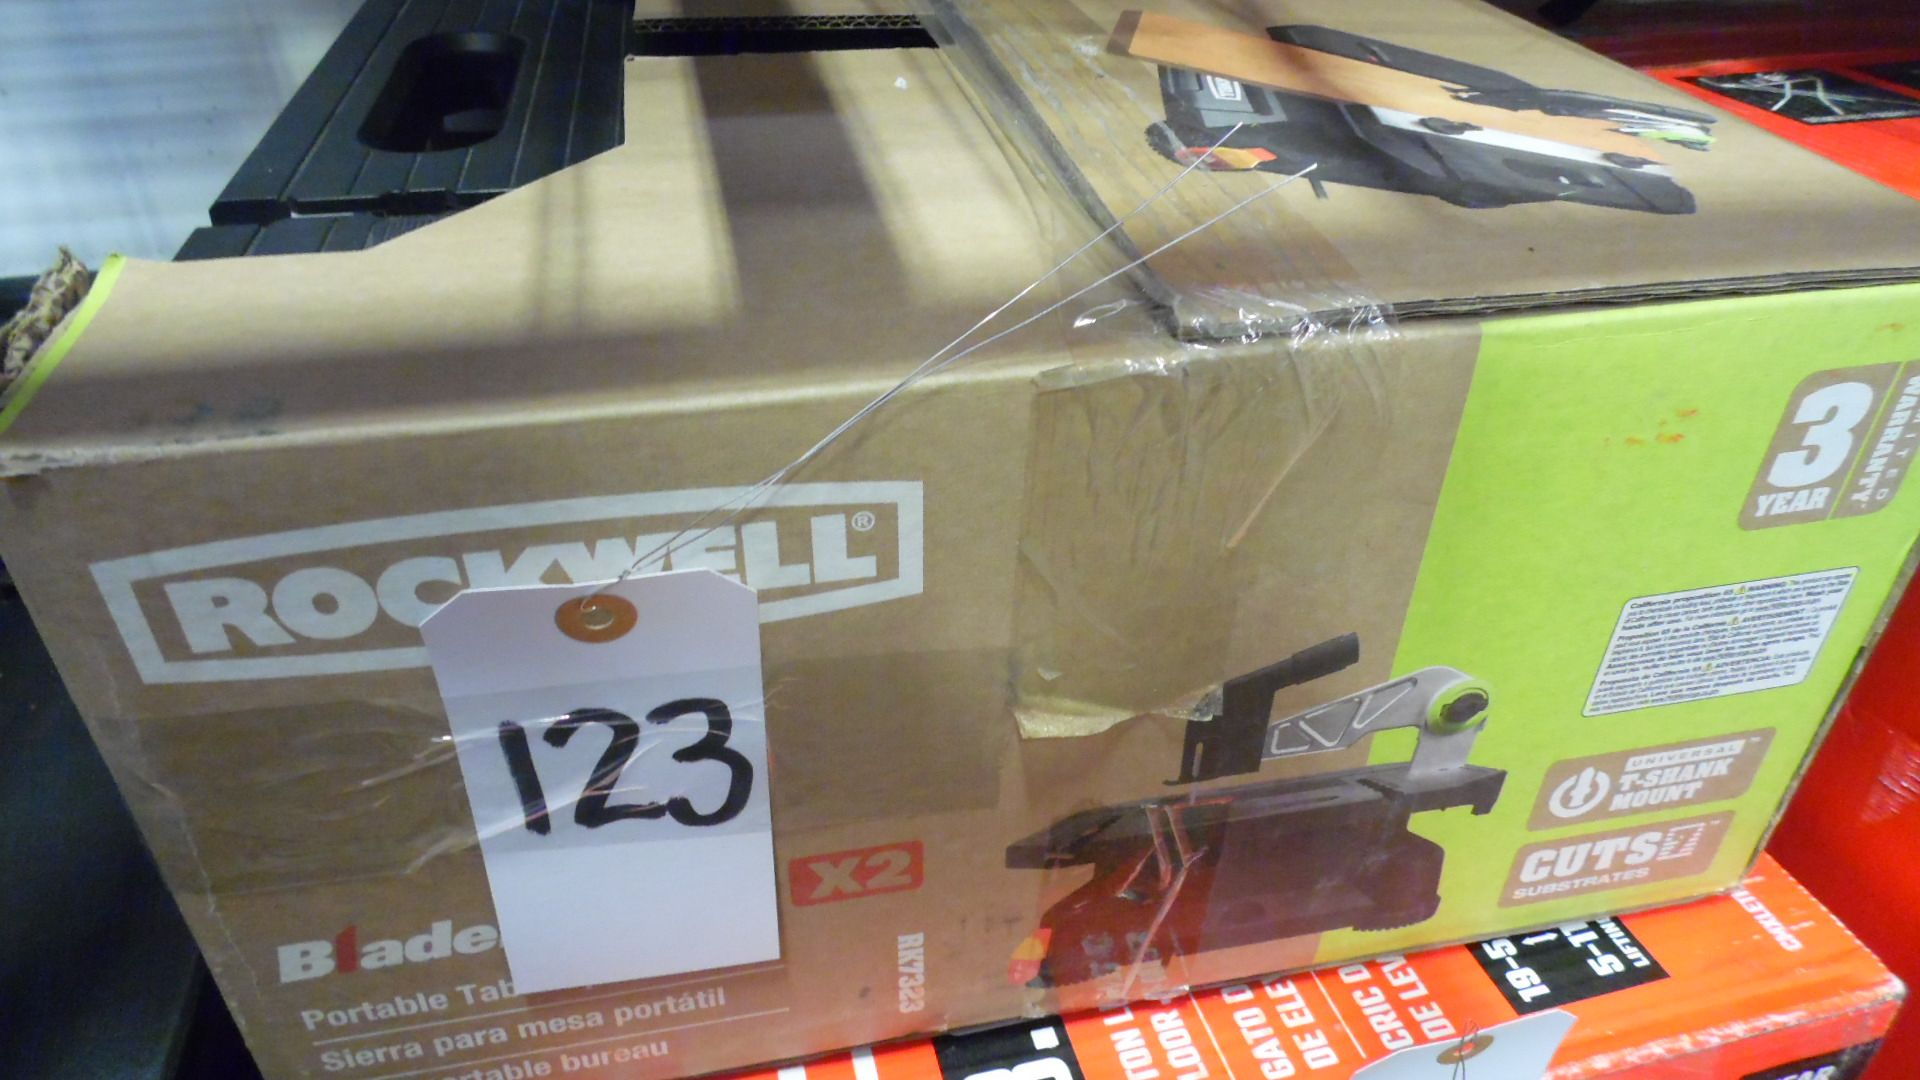 Lot 123 - ROCKWELL BLADE RUNNER TABLE SAW